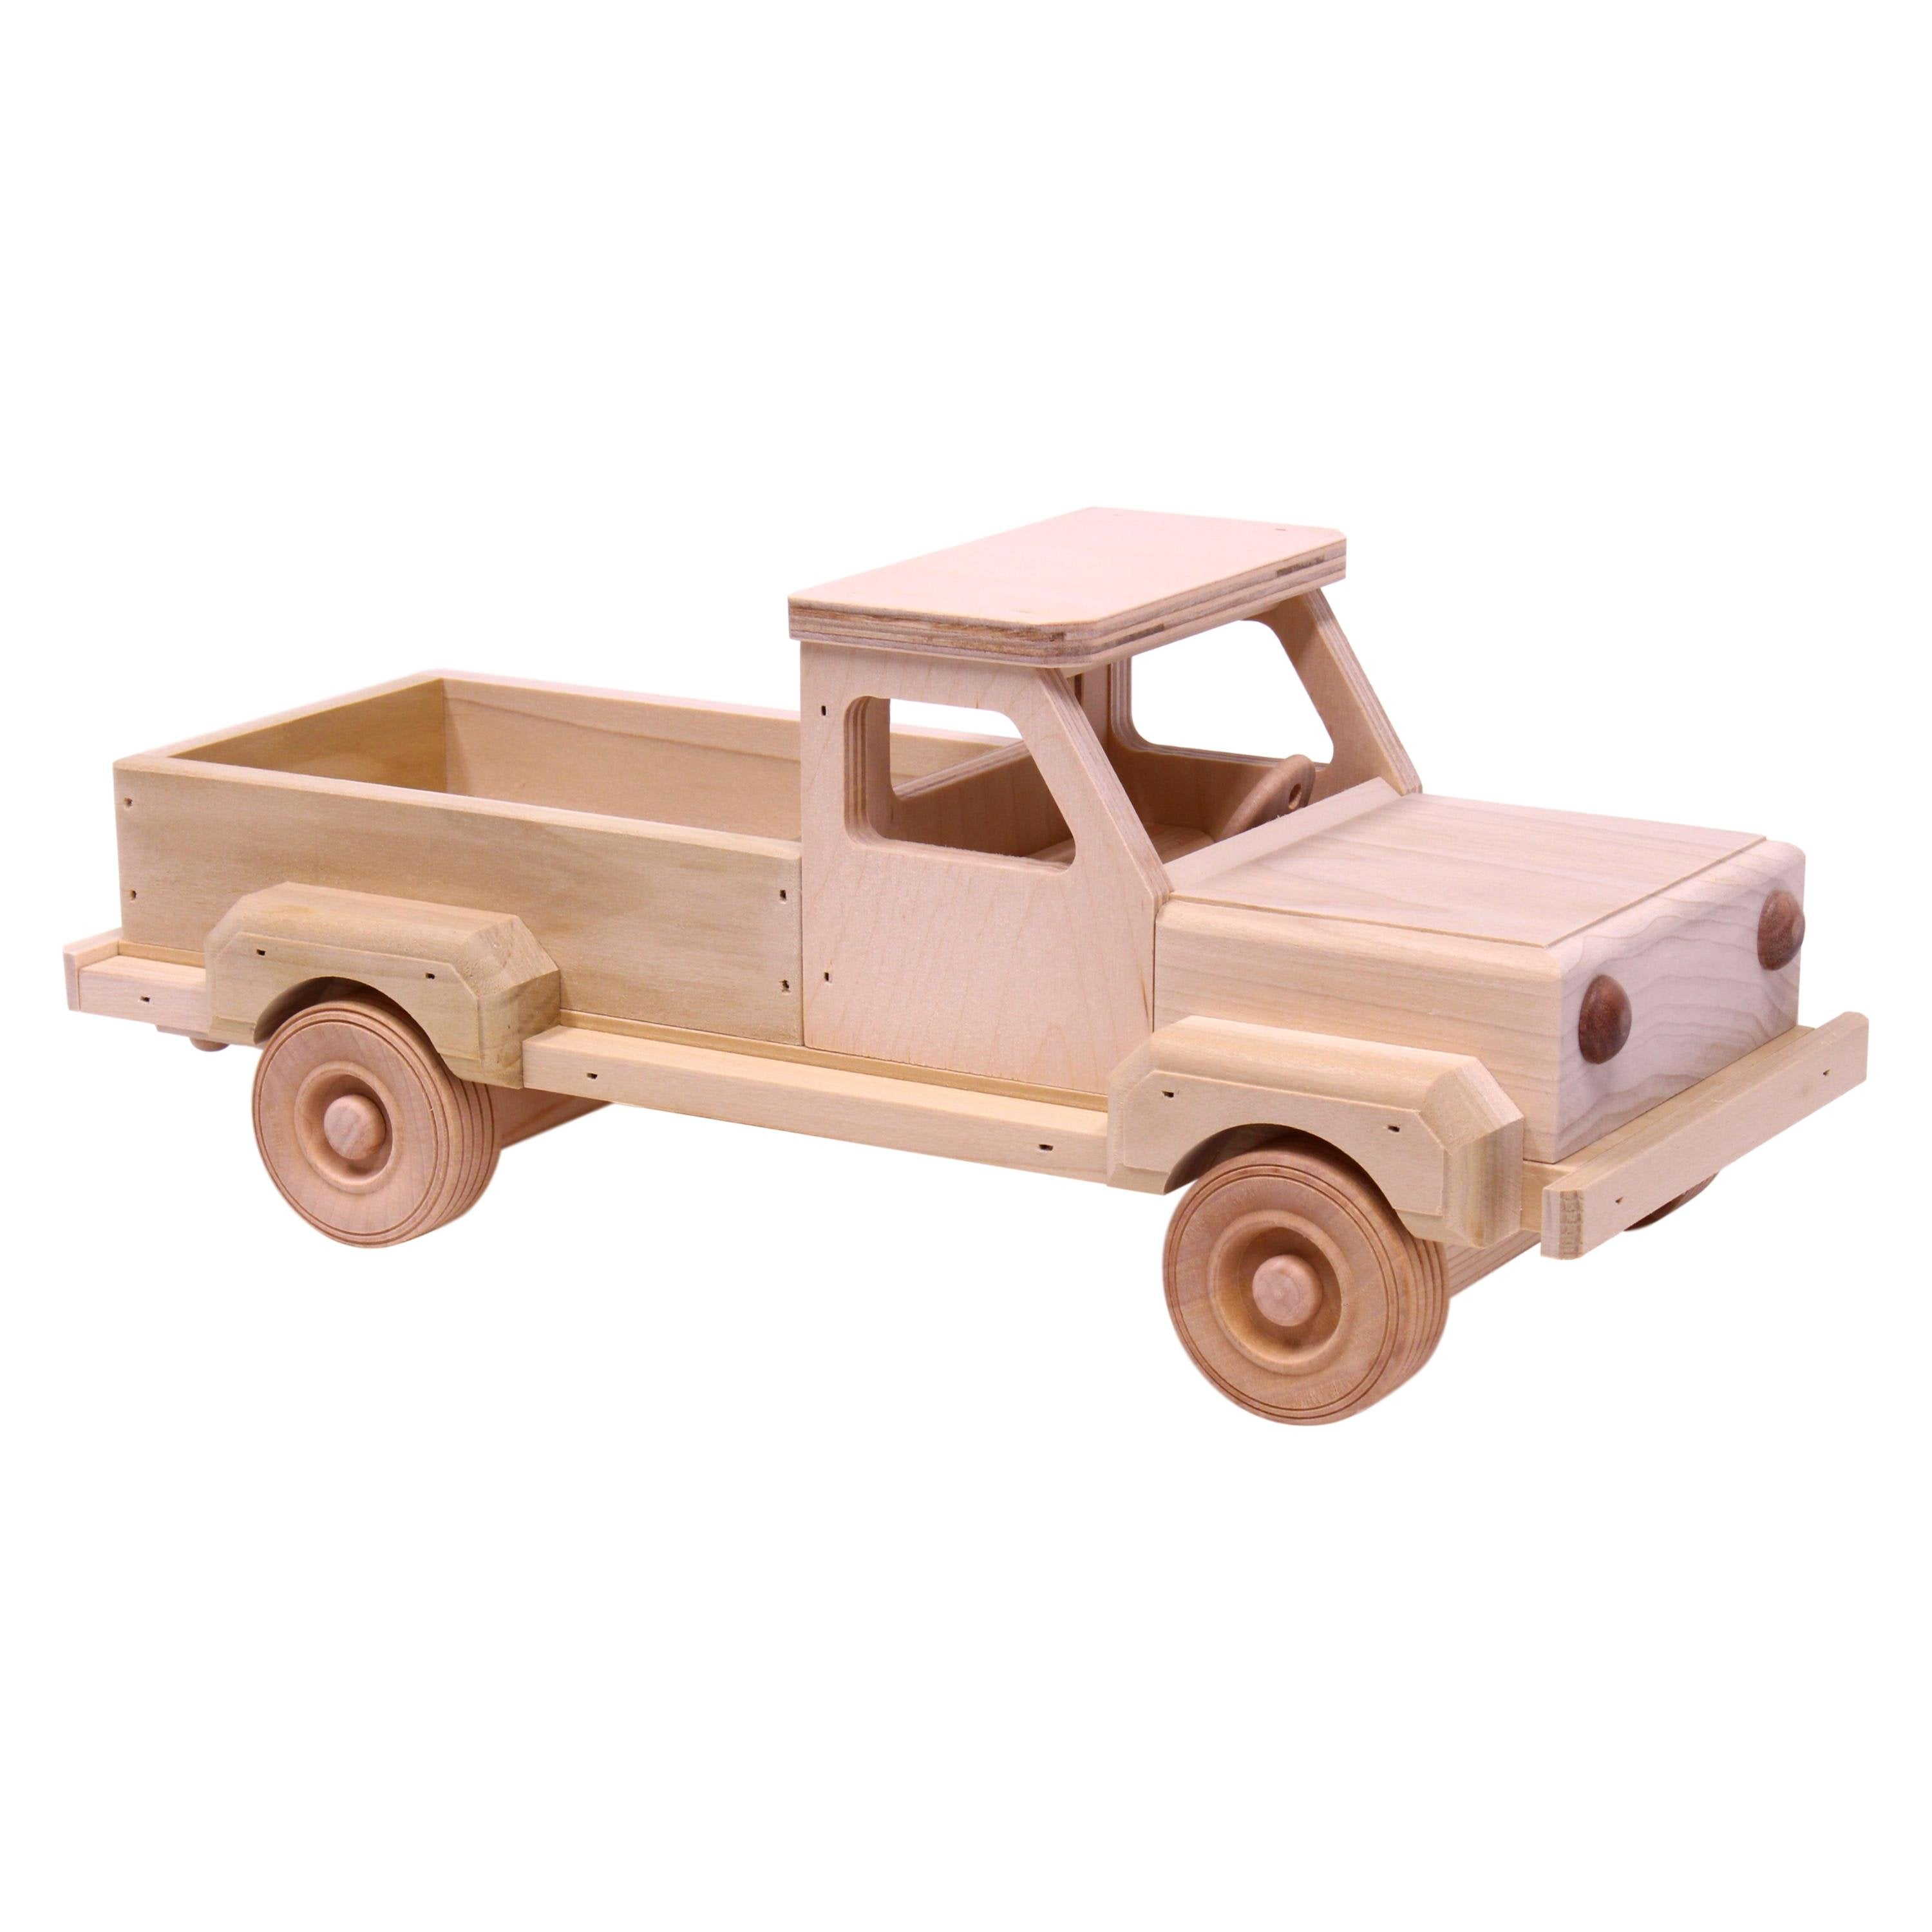 Amish-Made Wooden Toy Pickup Truck